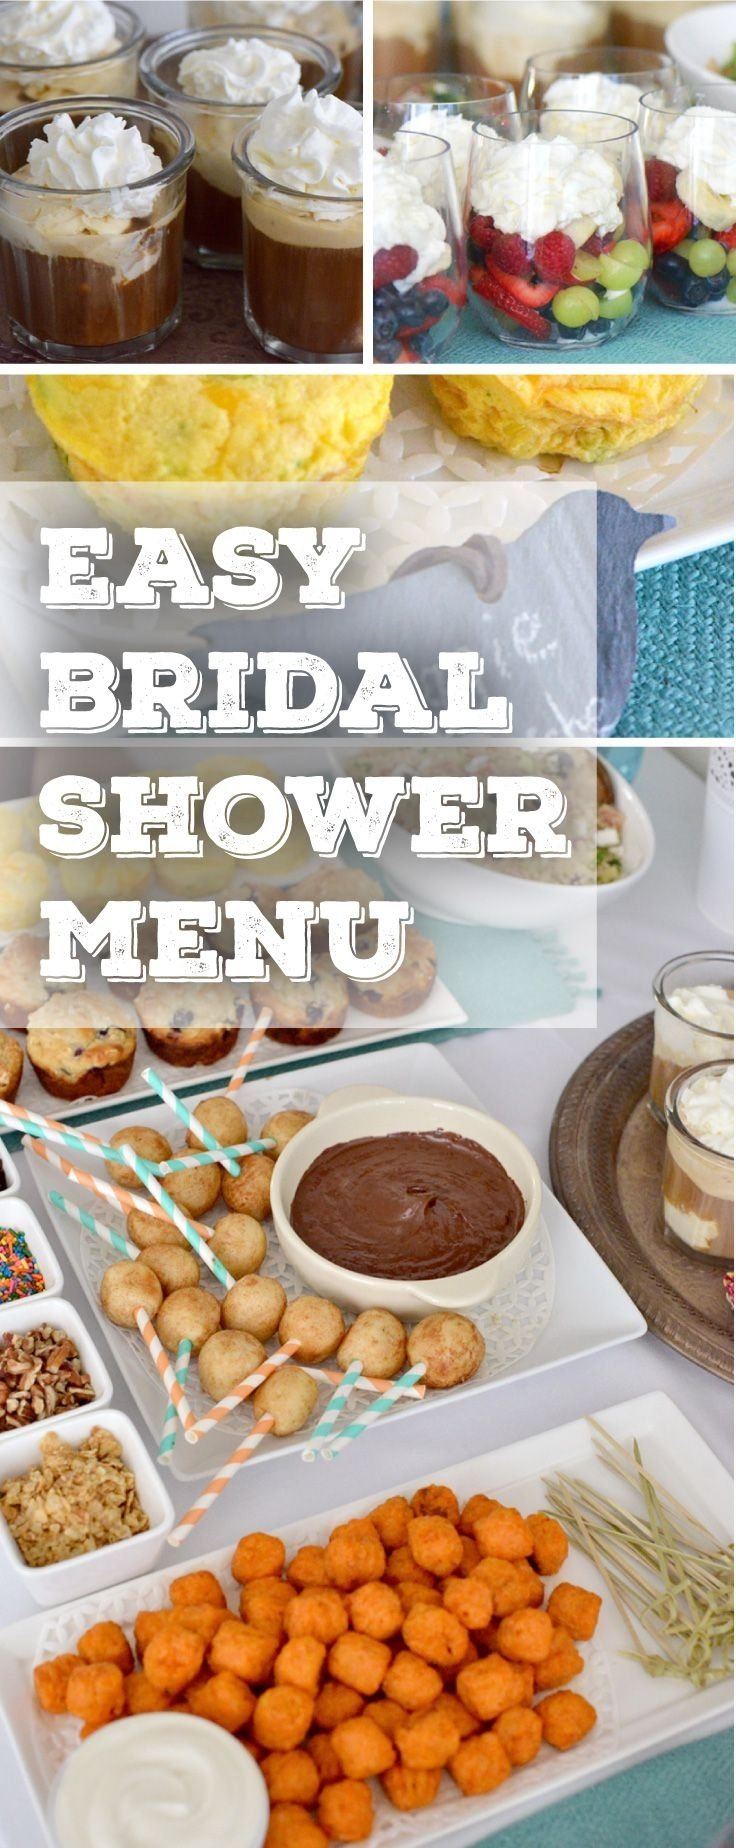 10 Lovable Bridal Shower Food Ideas Easy everything you need to plan the perfect bridal shower on a budget 1 2021